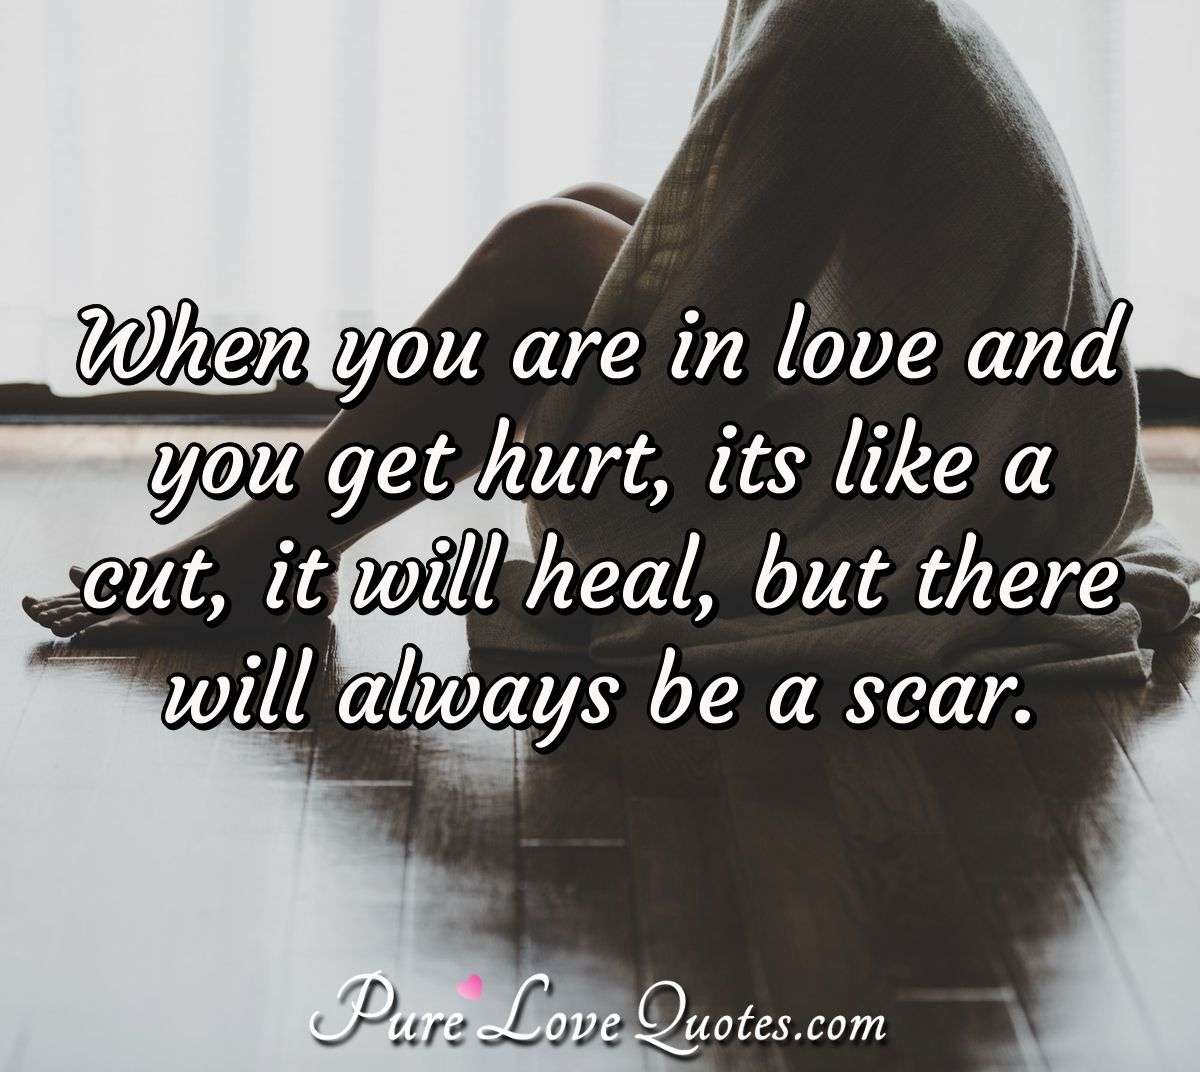 When you are in love and you get hurt, its like a cut, it will heal, but there will always be a scar. - Anonymous